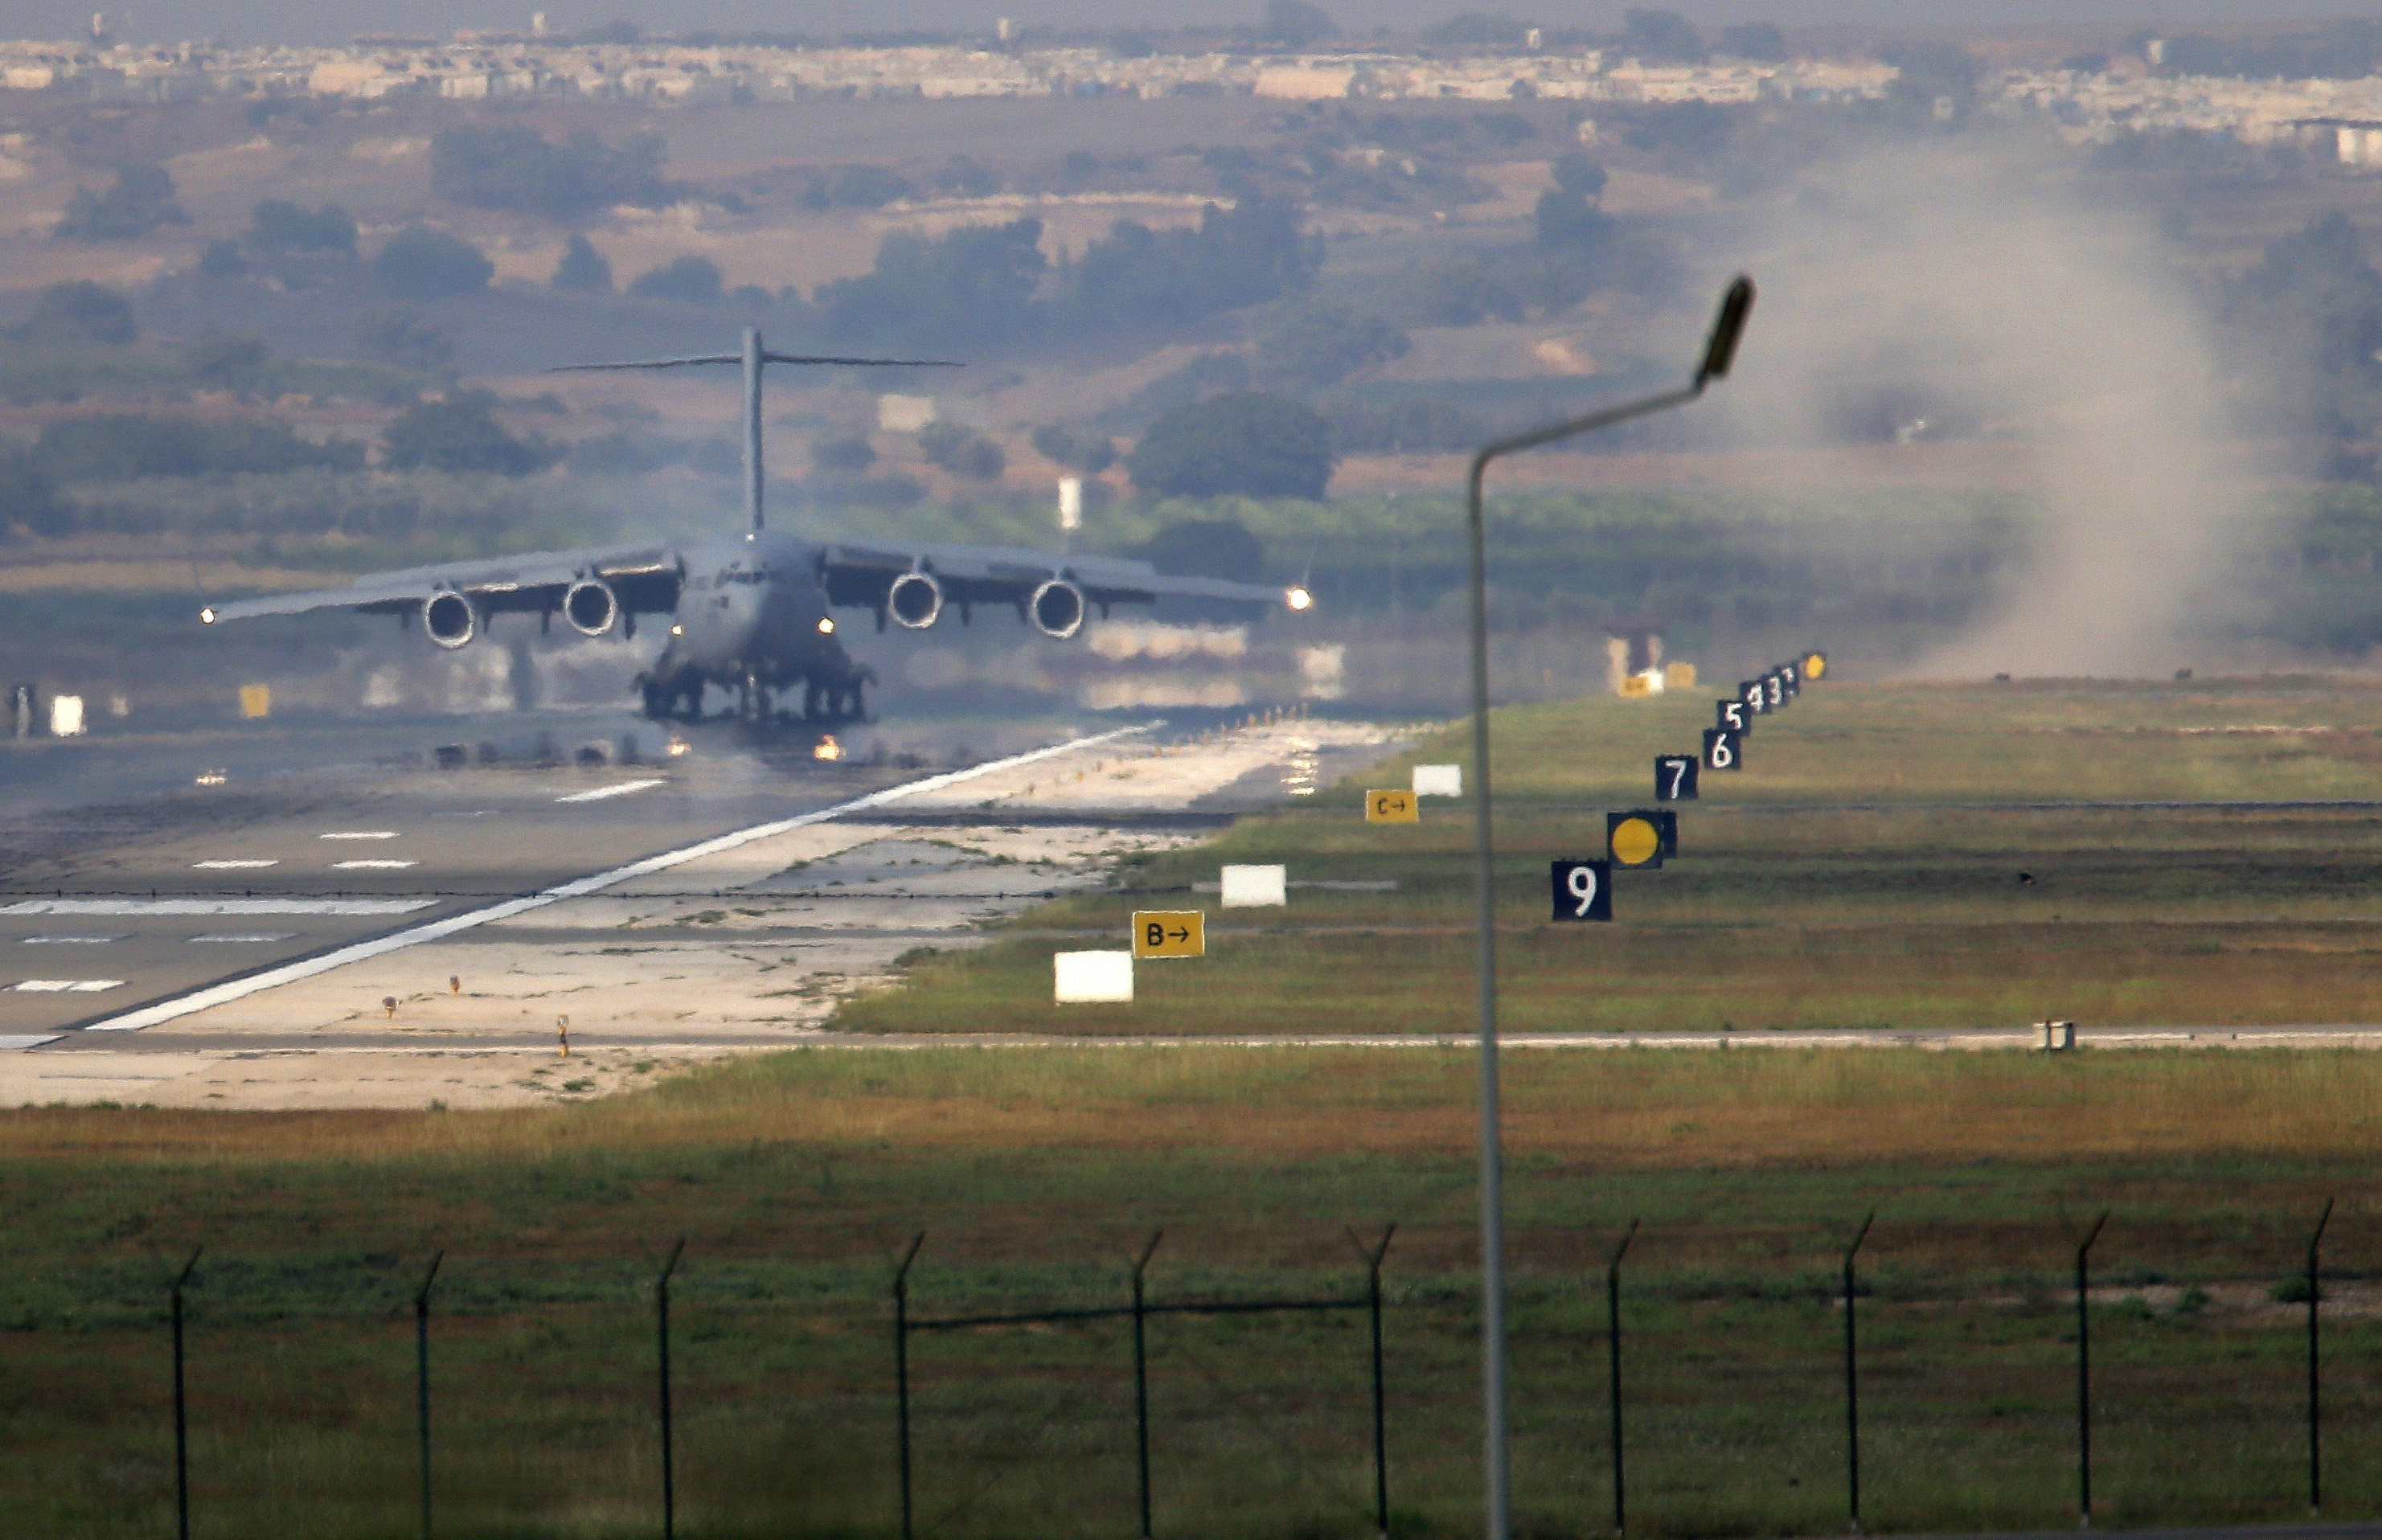 German Troops 'Ready for Transfer' from Turkey's Incirlik Airbase: Defense Minister